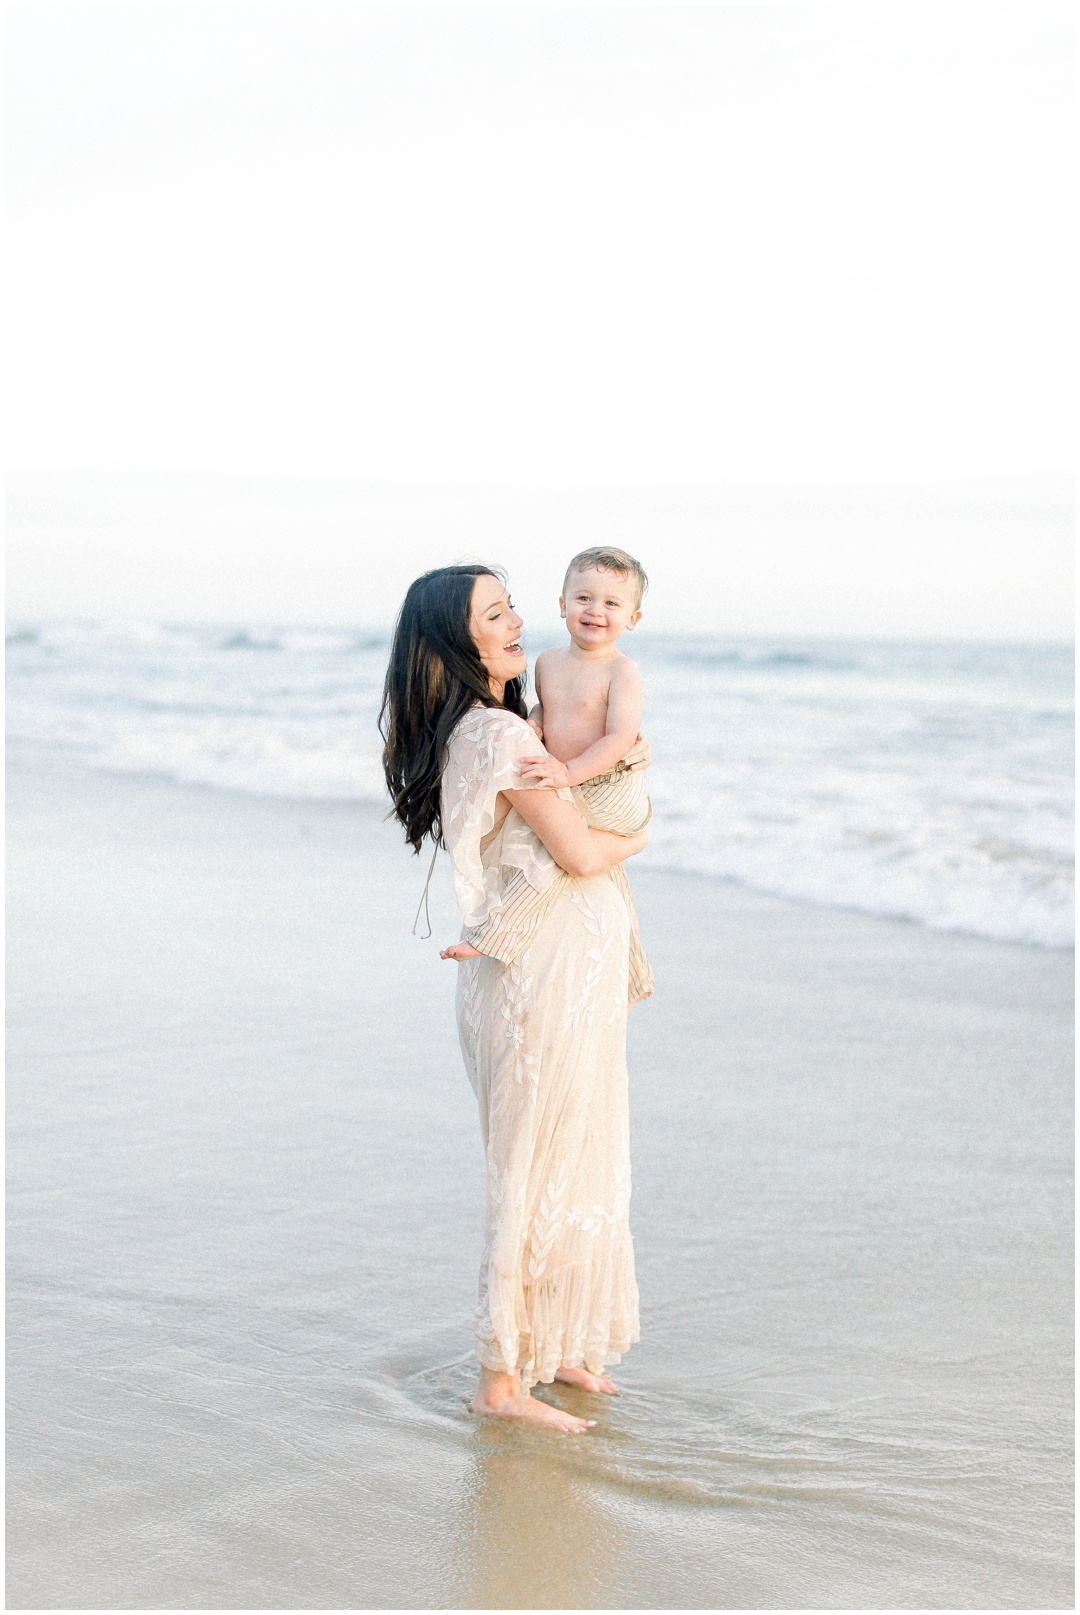 Newport_Beach_Newborn_Light_Airy_Natural_Photographer_Newport_Beach_Photographer_Orange_County_Family_Photographer_Cori_Kleckner_Photography_Huntington_Beach_Photographer_Family_OC_Newborn_Danielle_Lawley_Parker_Maternity_Family_Jordan_Lawley_3365.jpg